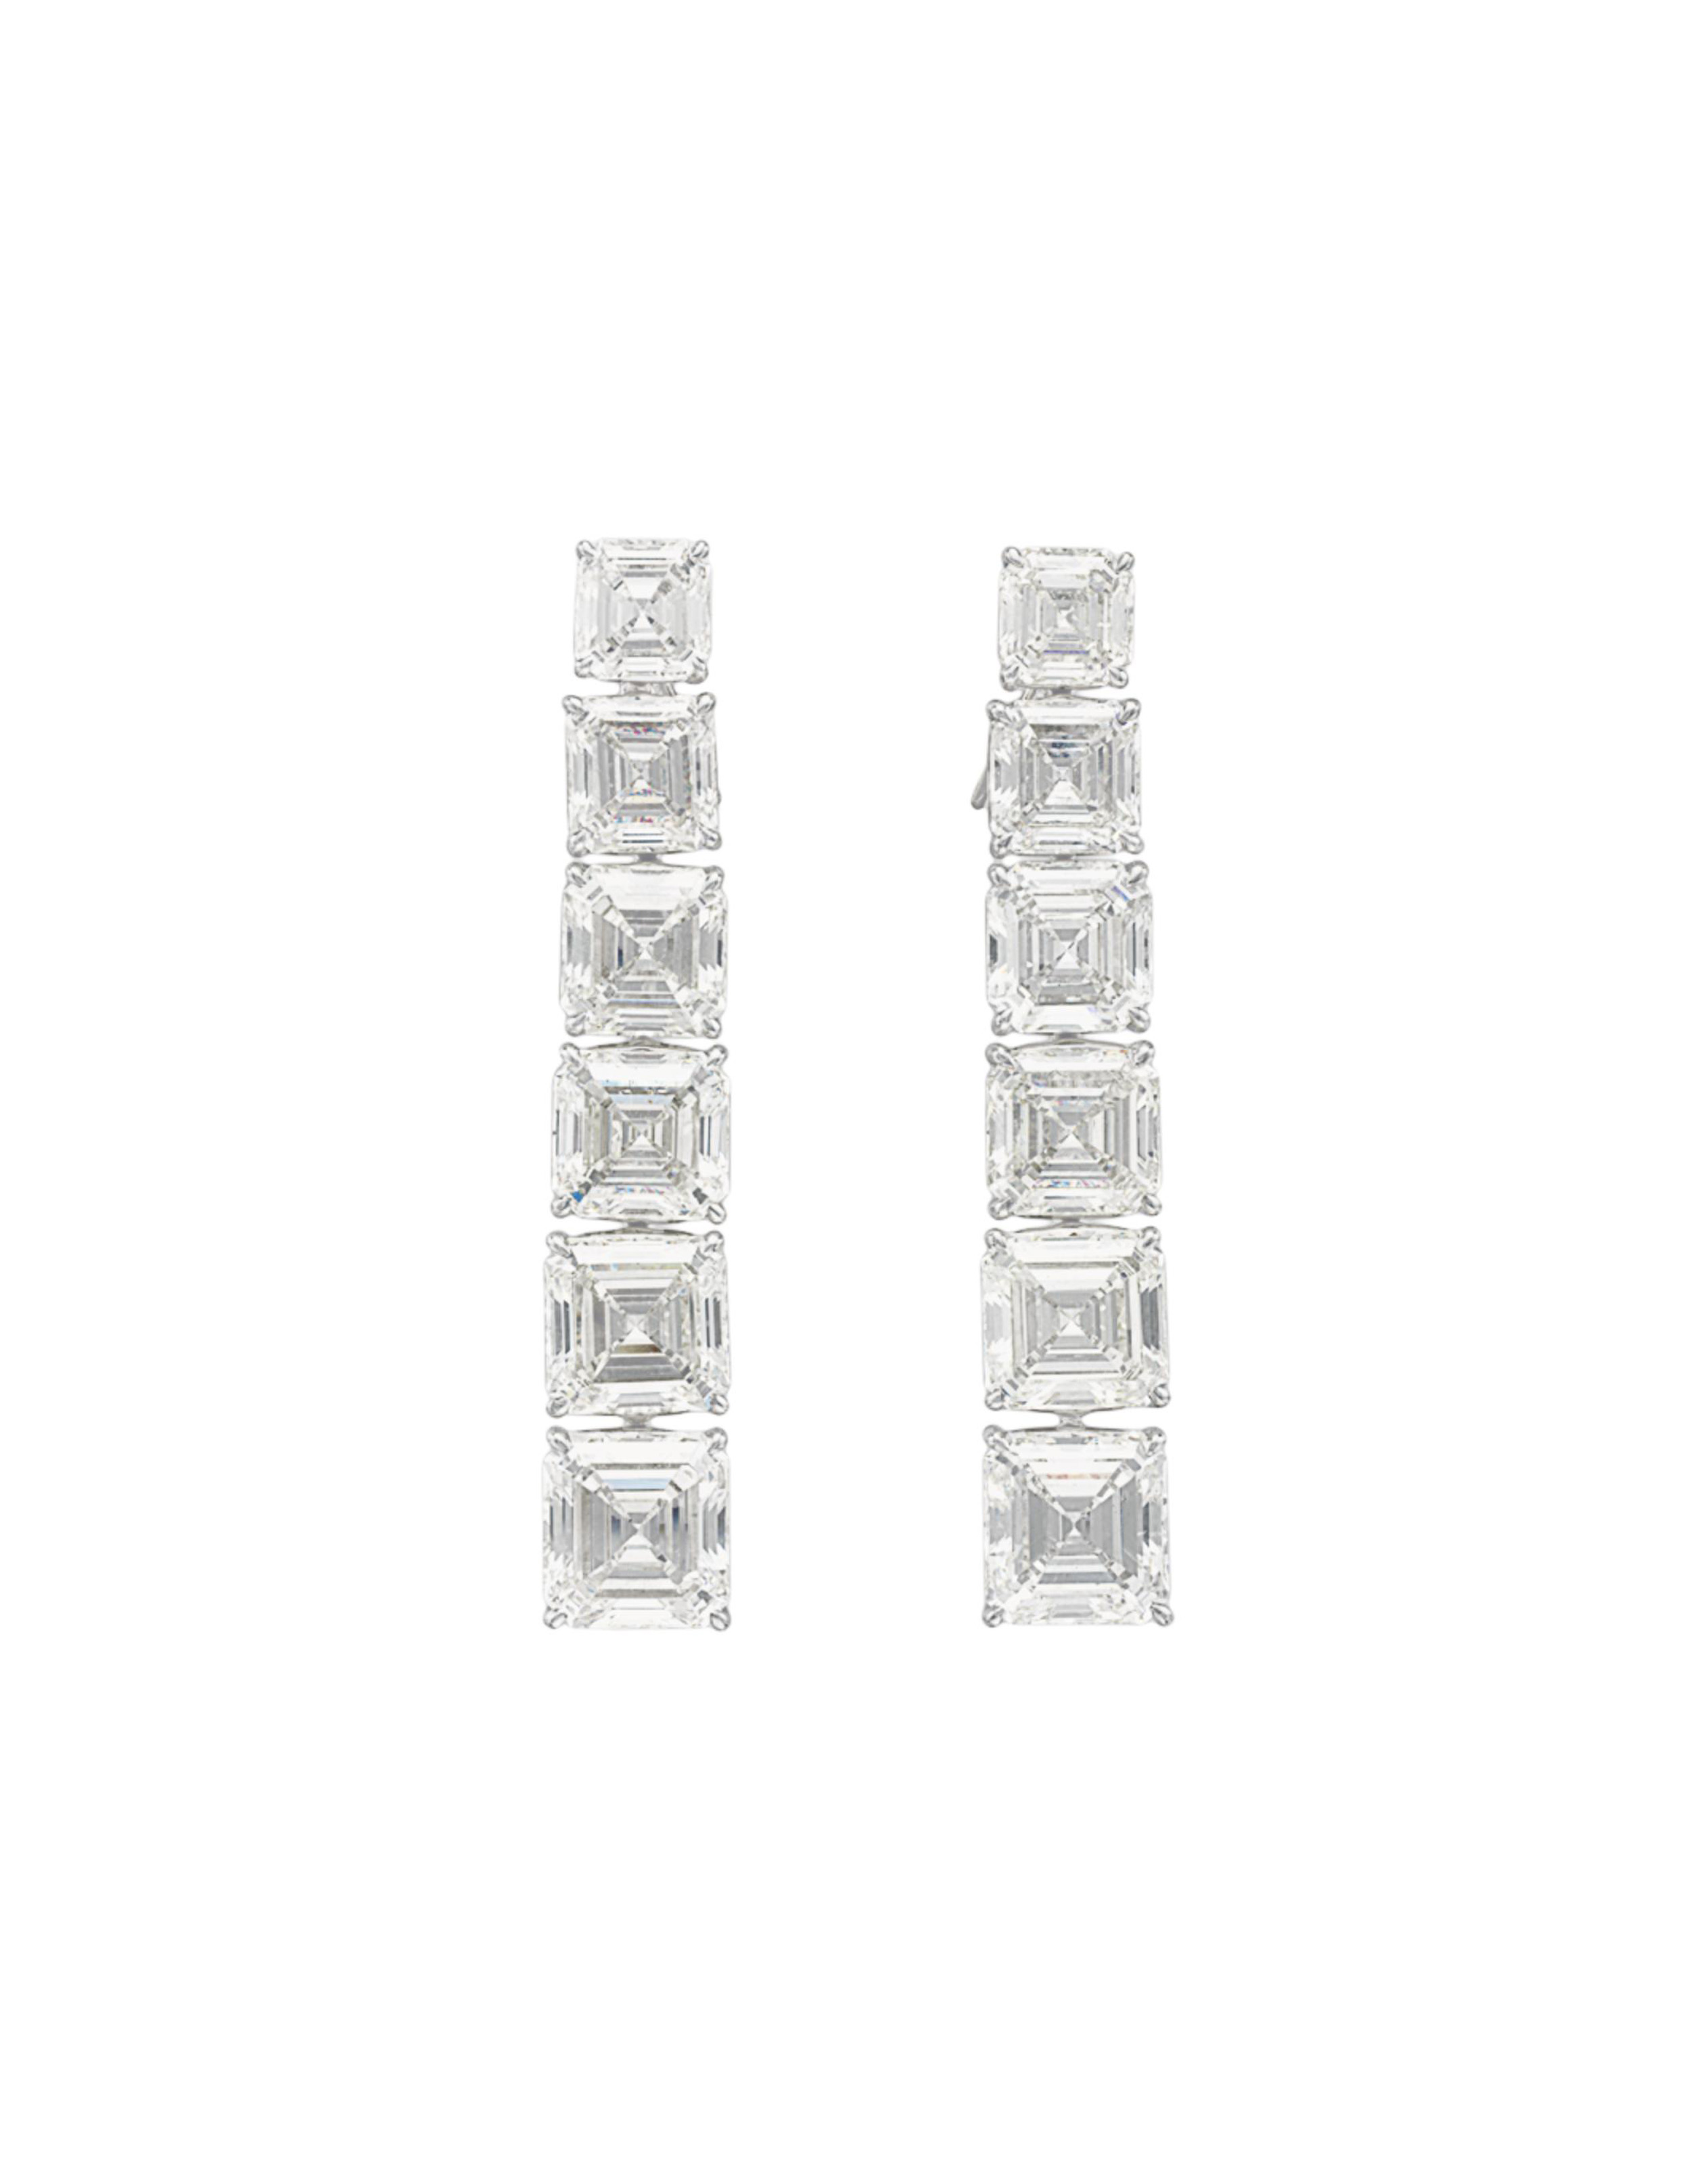 A PAIR OF DIAMOND EAR PENDANTS, BY OSCAR HEYMAN & BROTHERS